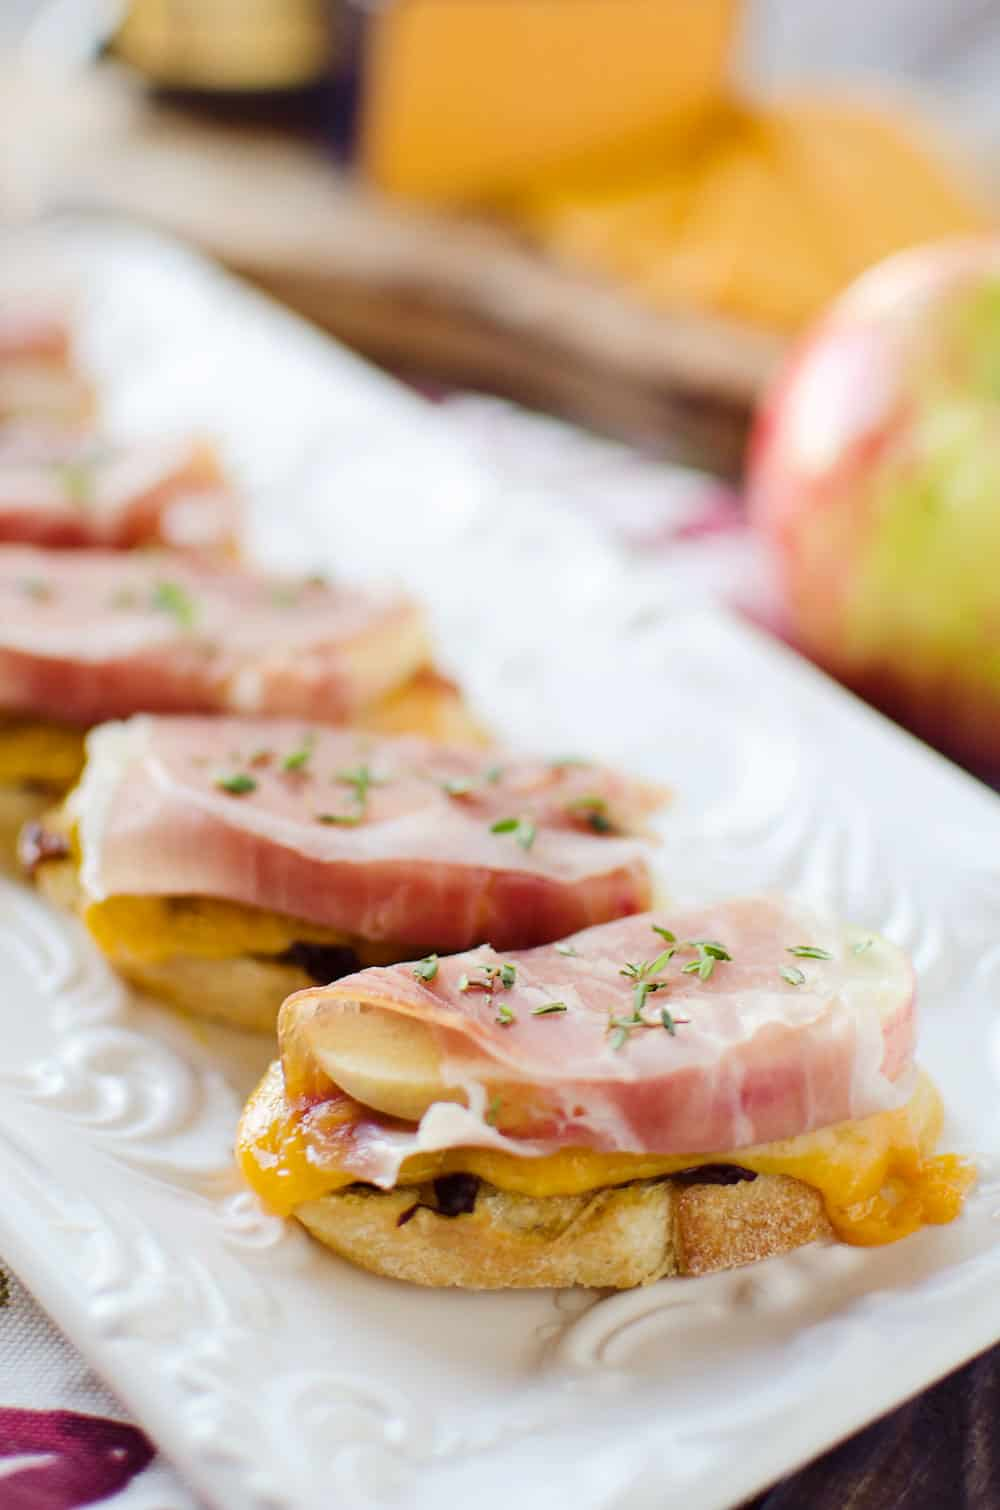 caramelized-onion-and-cheddar-crostinis-with-prociutto-wrapped-apples-appetizer